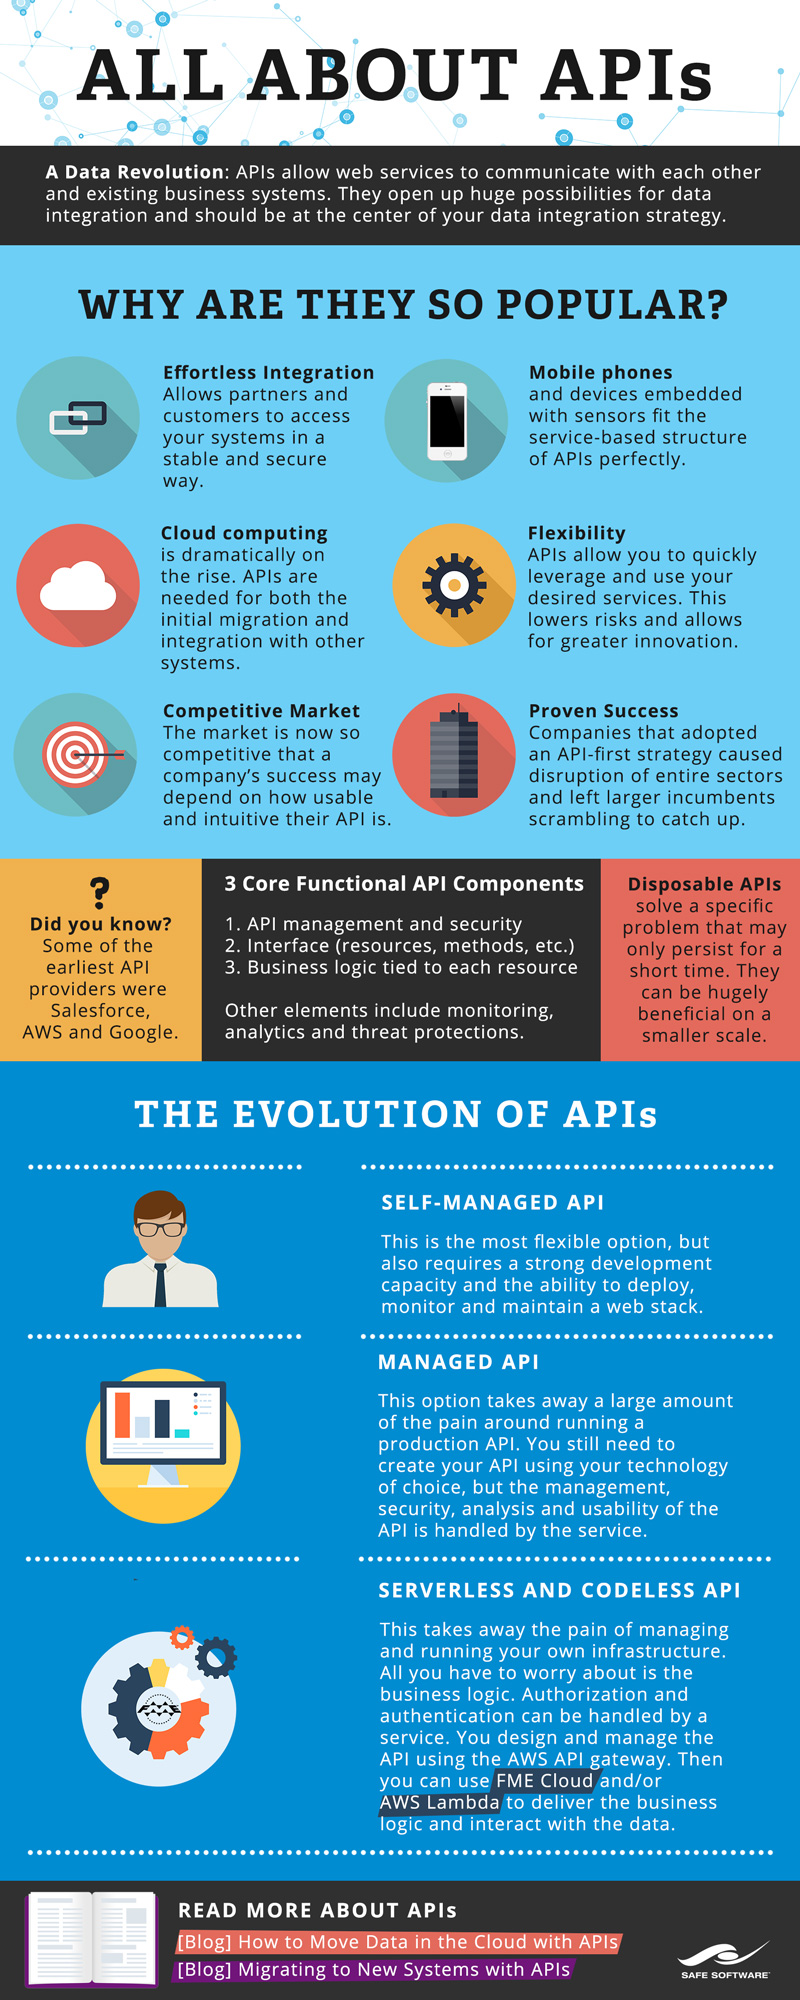 [Infographic] All About APIs